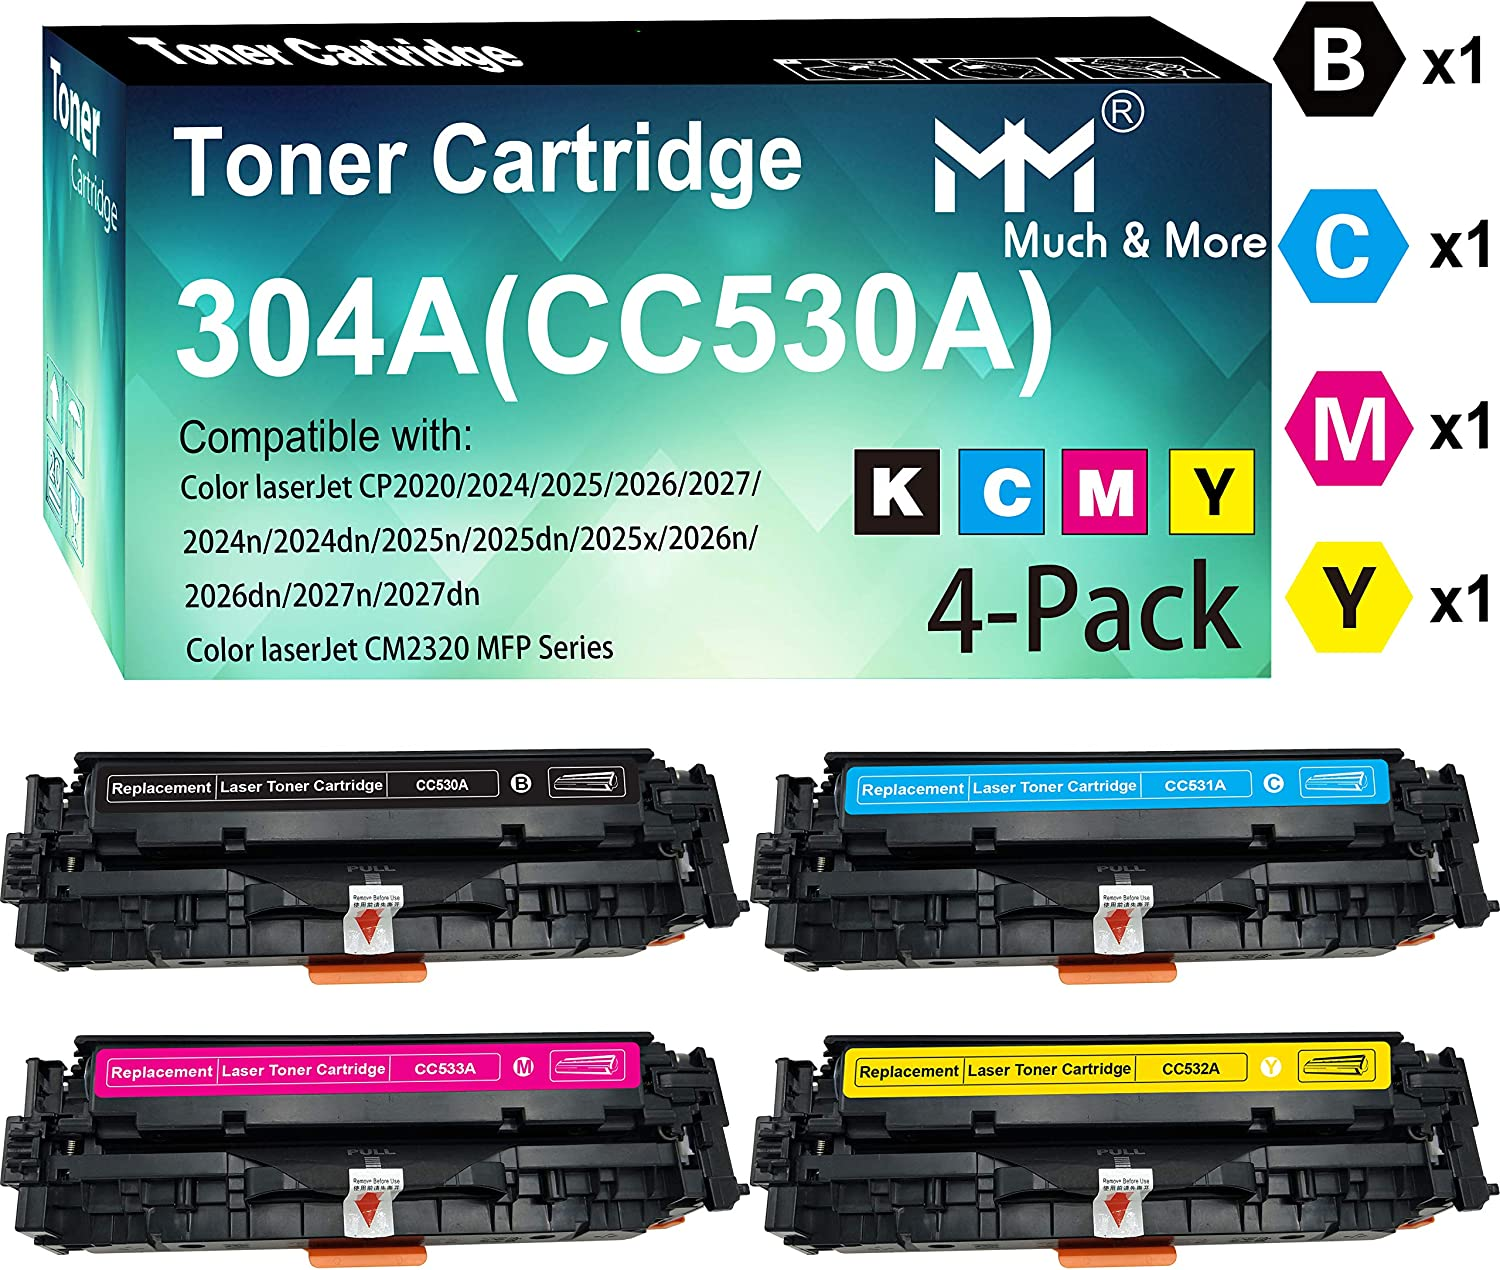 (4-Pack, B+C+M+Y) Compatible CC530A CC531A CC532A CC533A Toner Cartridge 304A Used for HP Laserjet Enterprise M351MFP M375nw M451nw M451dn M451dw MFP M475dn M475dw Printer, Sold by MuchMore